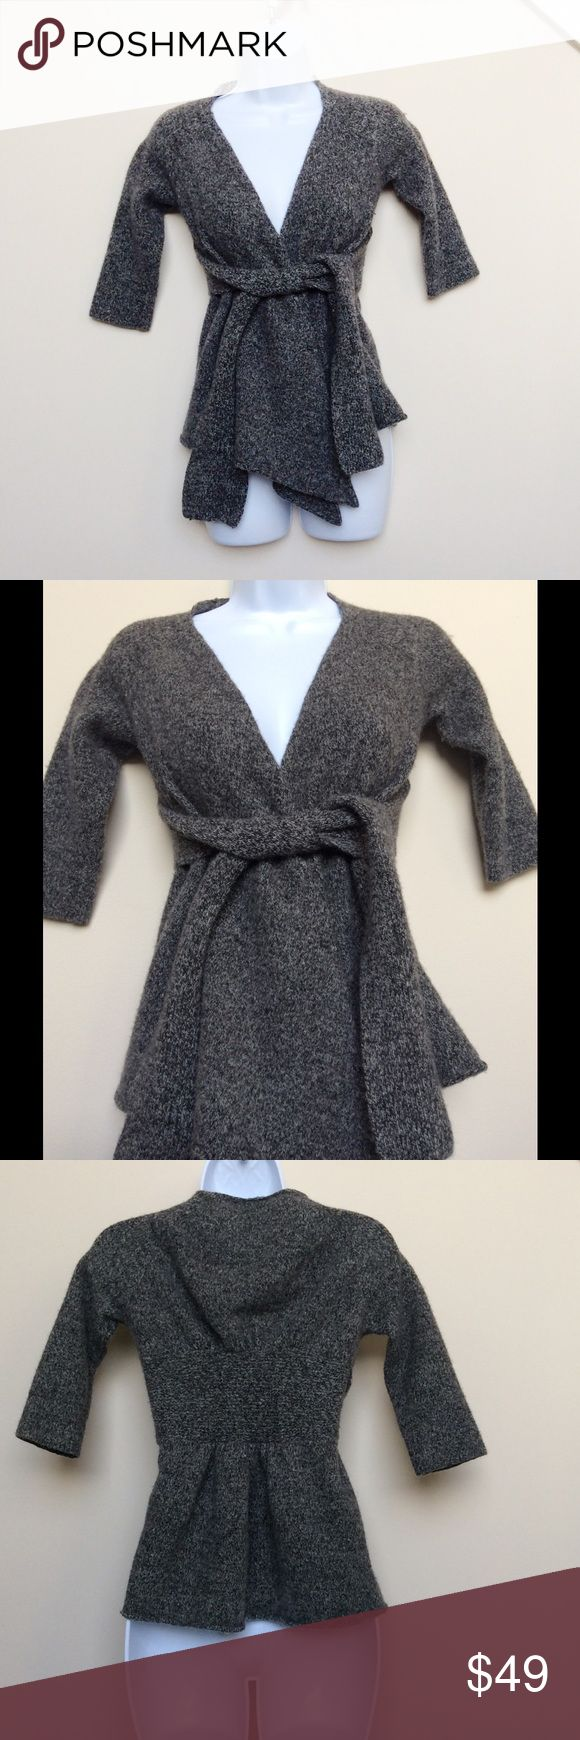 Anthropologie Grey Long Cardigan with Tie Closure You will surely be warm and cozy in this lovely grey long cardigan from Canary brand for Anthropologie.  Size XS.  Cardigan is has marled grey pattern and features tie closure, 3/4 length sleeves, and is slightly cinched at waist for a flattering figure profile.  Item is in excellent used condition.  Material content is 89% wool (very warm!), 10% nylon, 1% spandex. Anthropologie Sweaters Cardigans